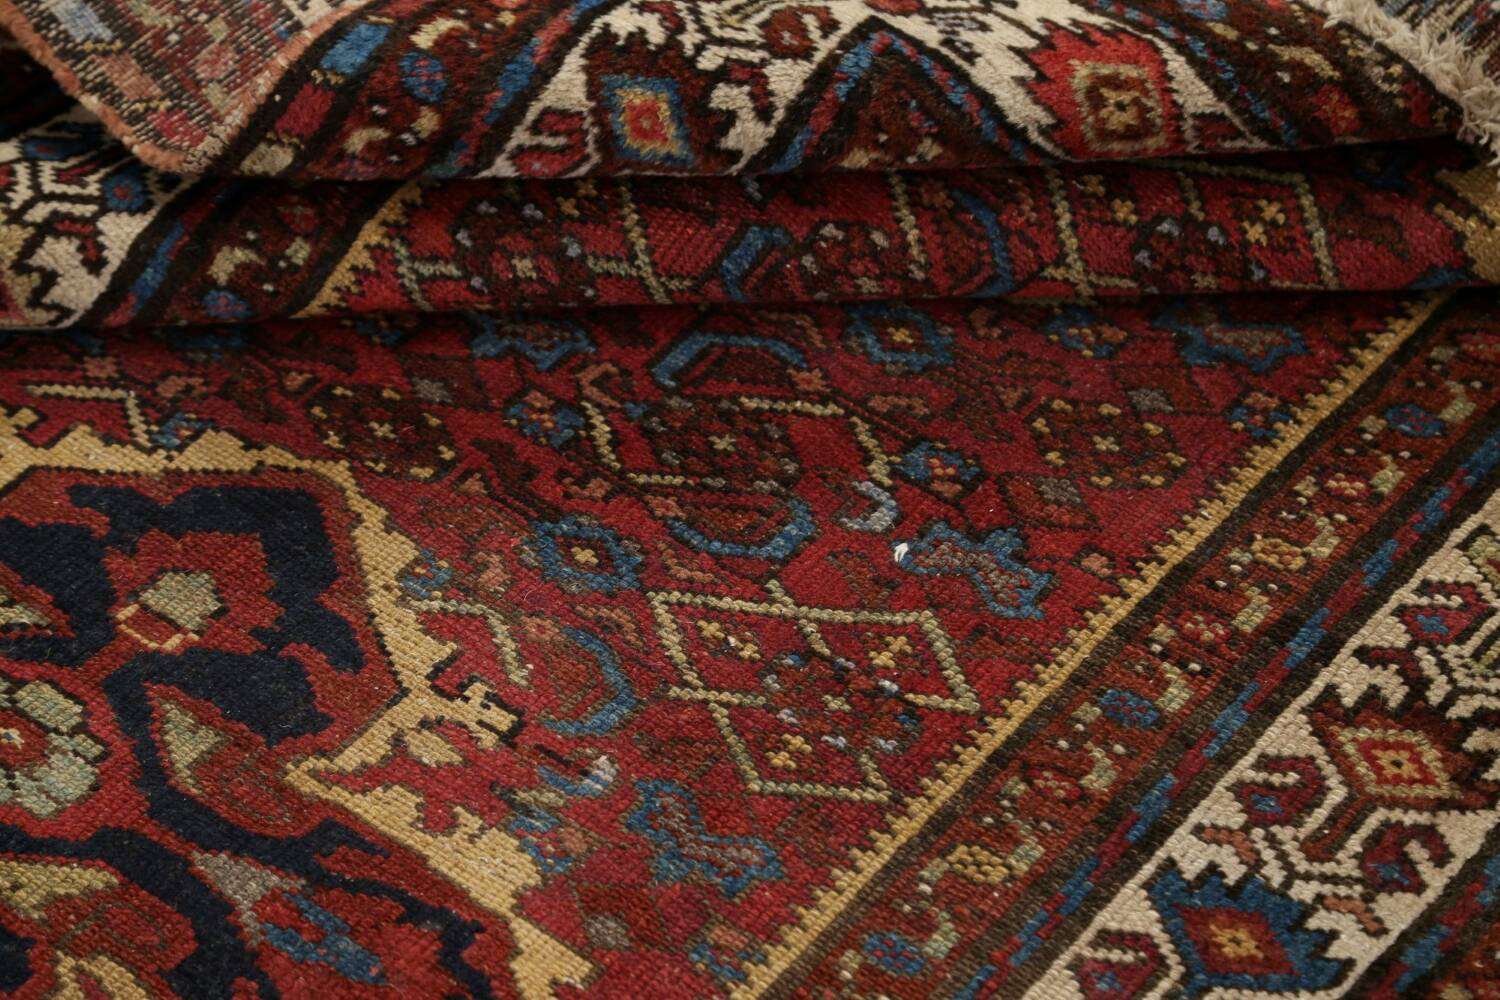 Pre-1900 Antique Vegetable Dye Malayer Persian Area Rug 4x7 image 16